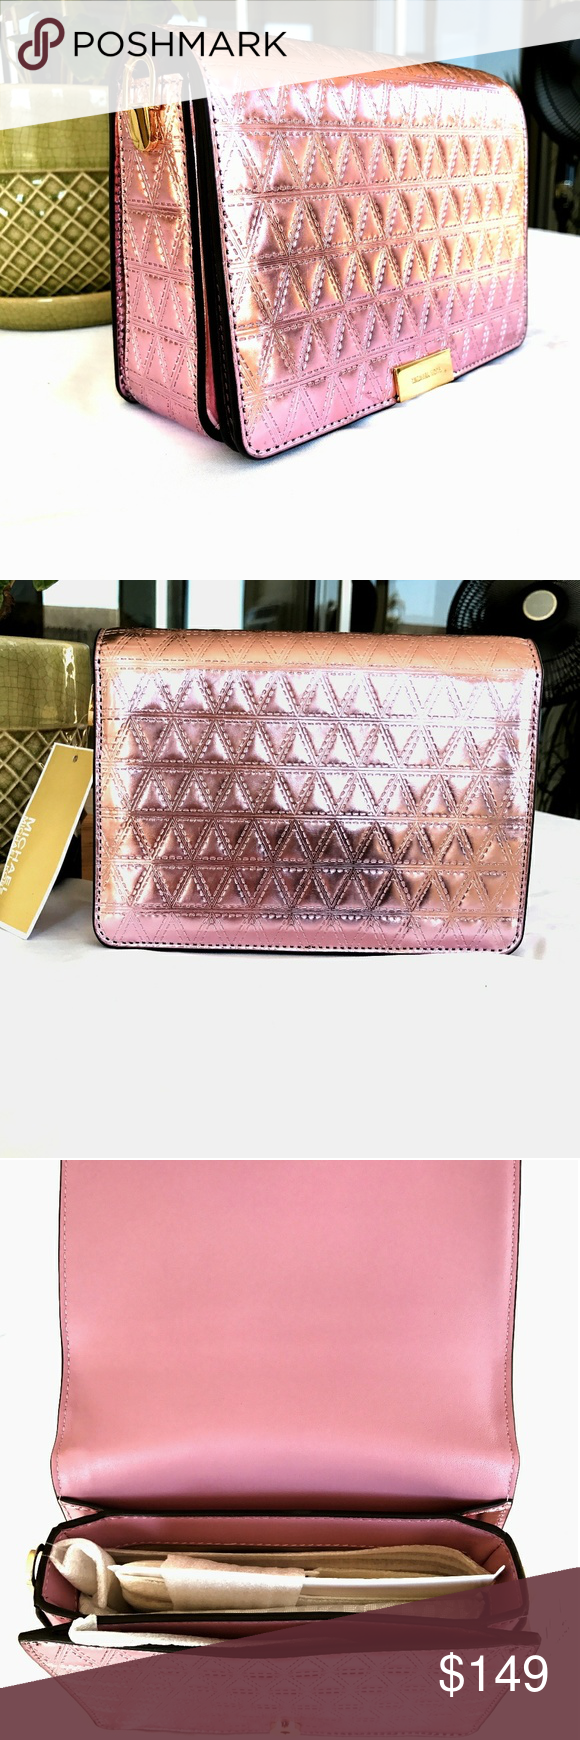 ca7ef4e2773d Michael Kors MD  Jade  Gusset Clutch in Soft Pink 🔥 CLEARANCE SPECIAL 🔥  This